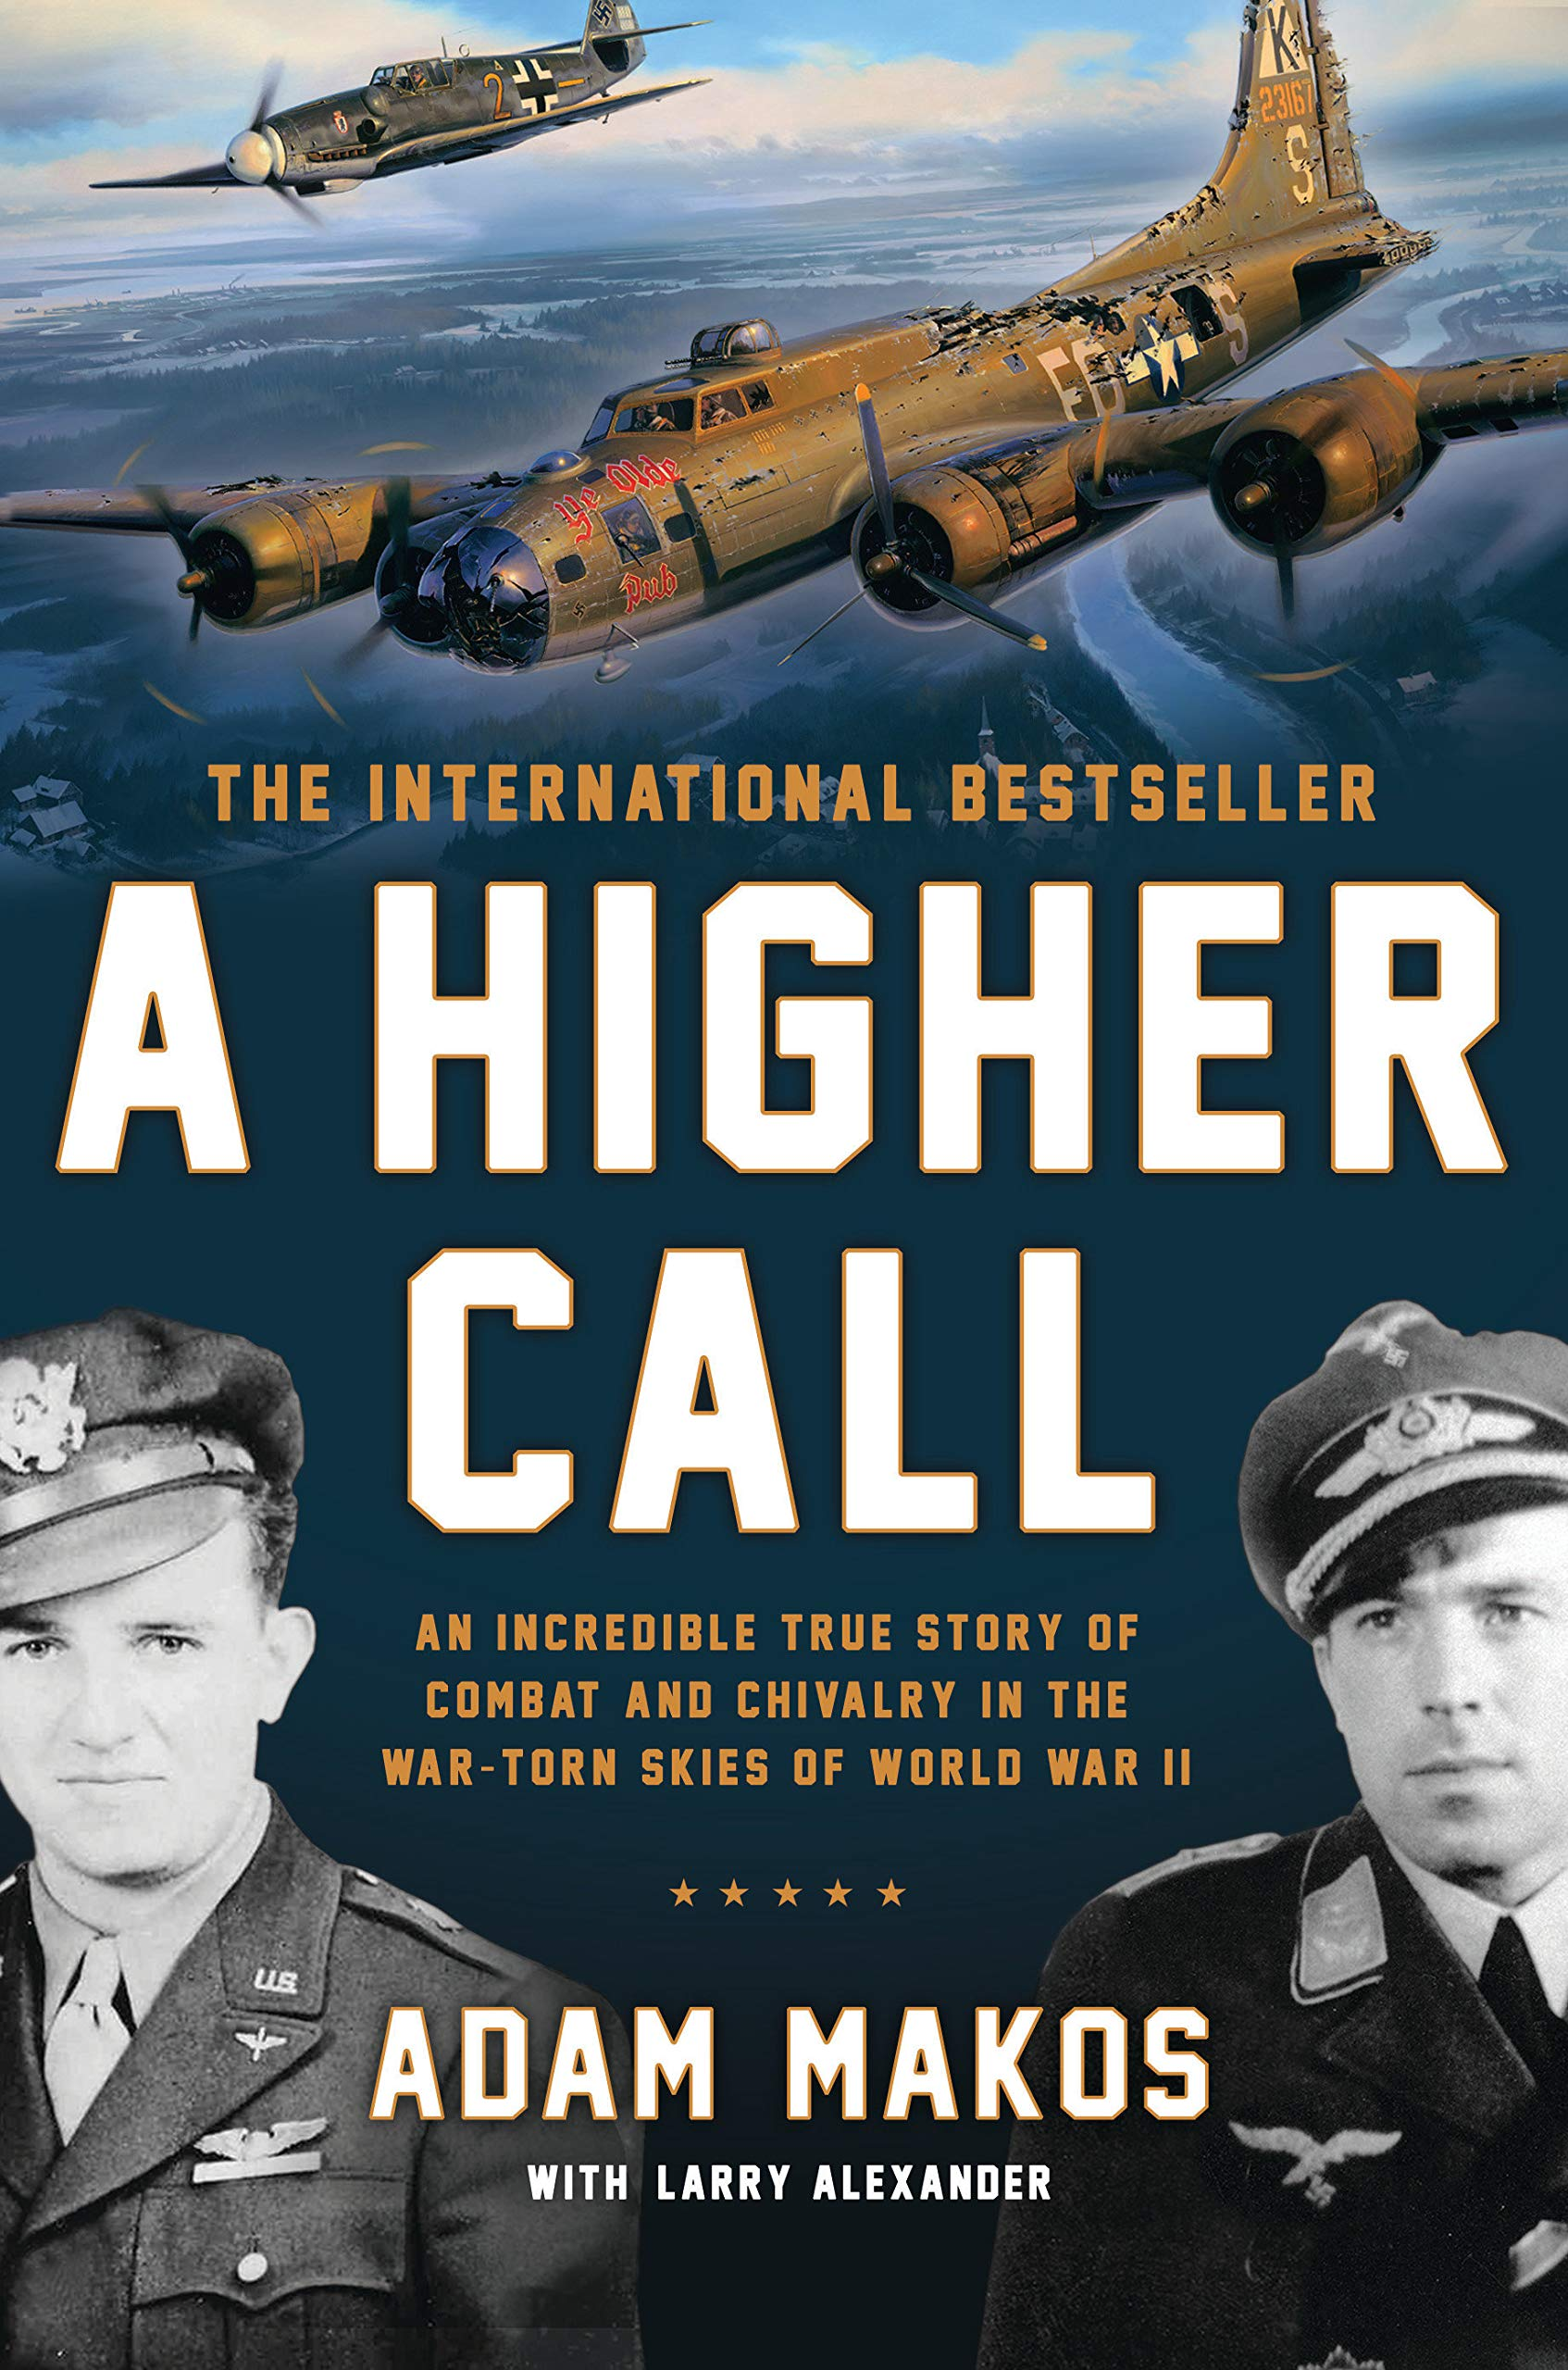 Read A Higher Call An Incredible True Story Of Combat And Chivalry In The War Torn Skies Of World War Ii By Adam Makos